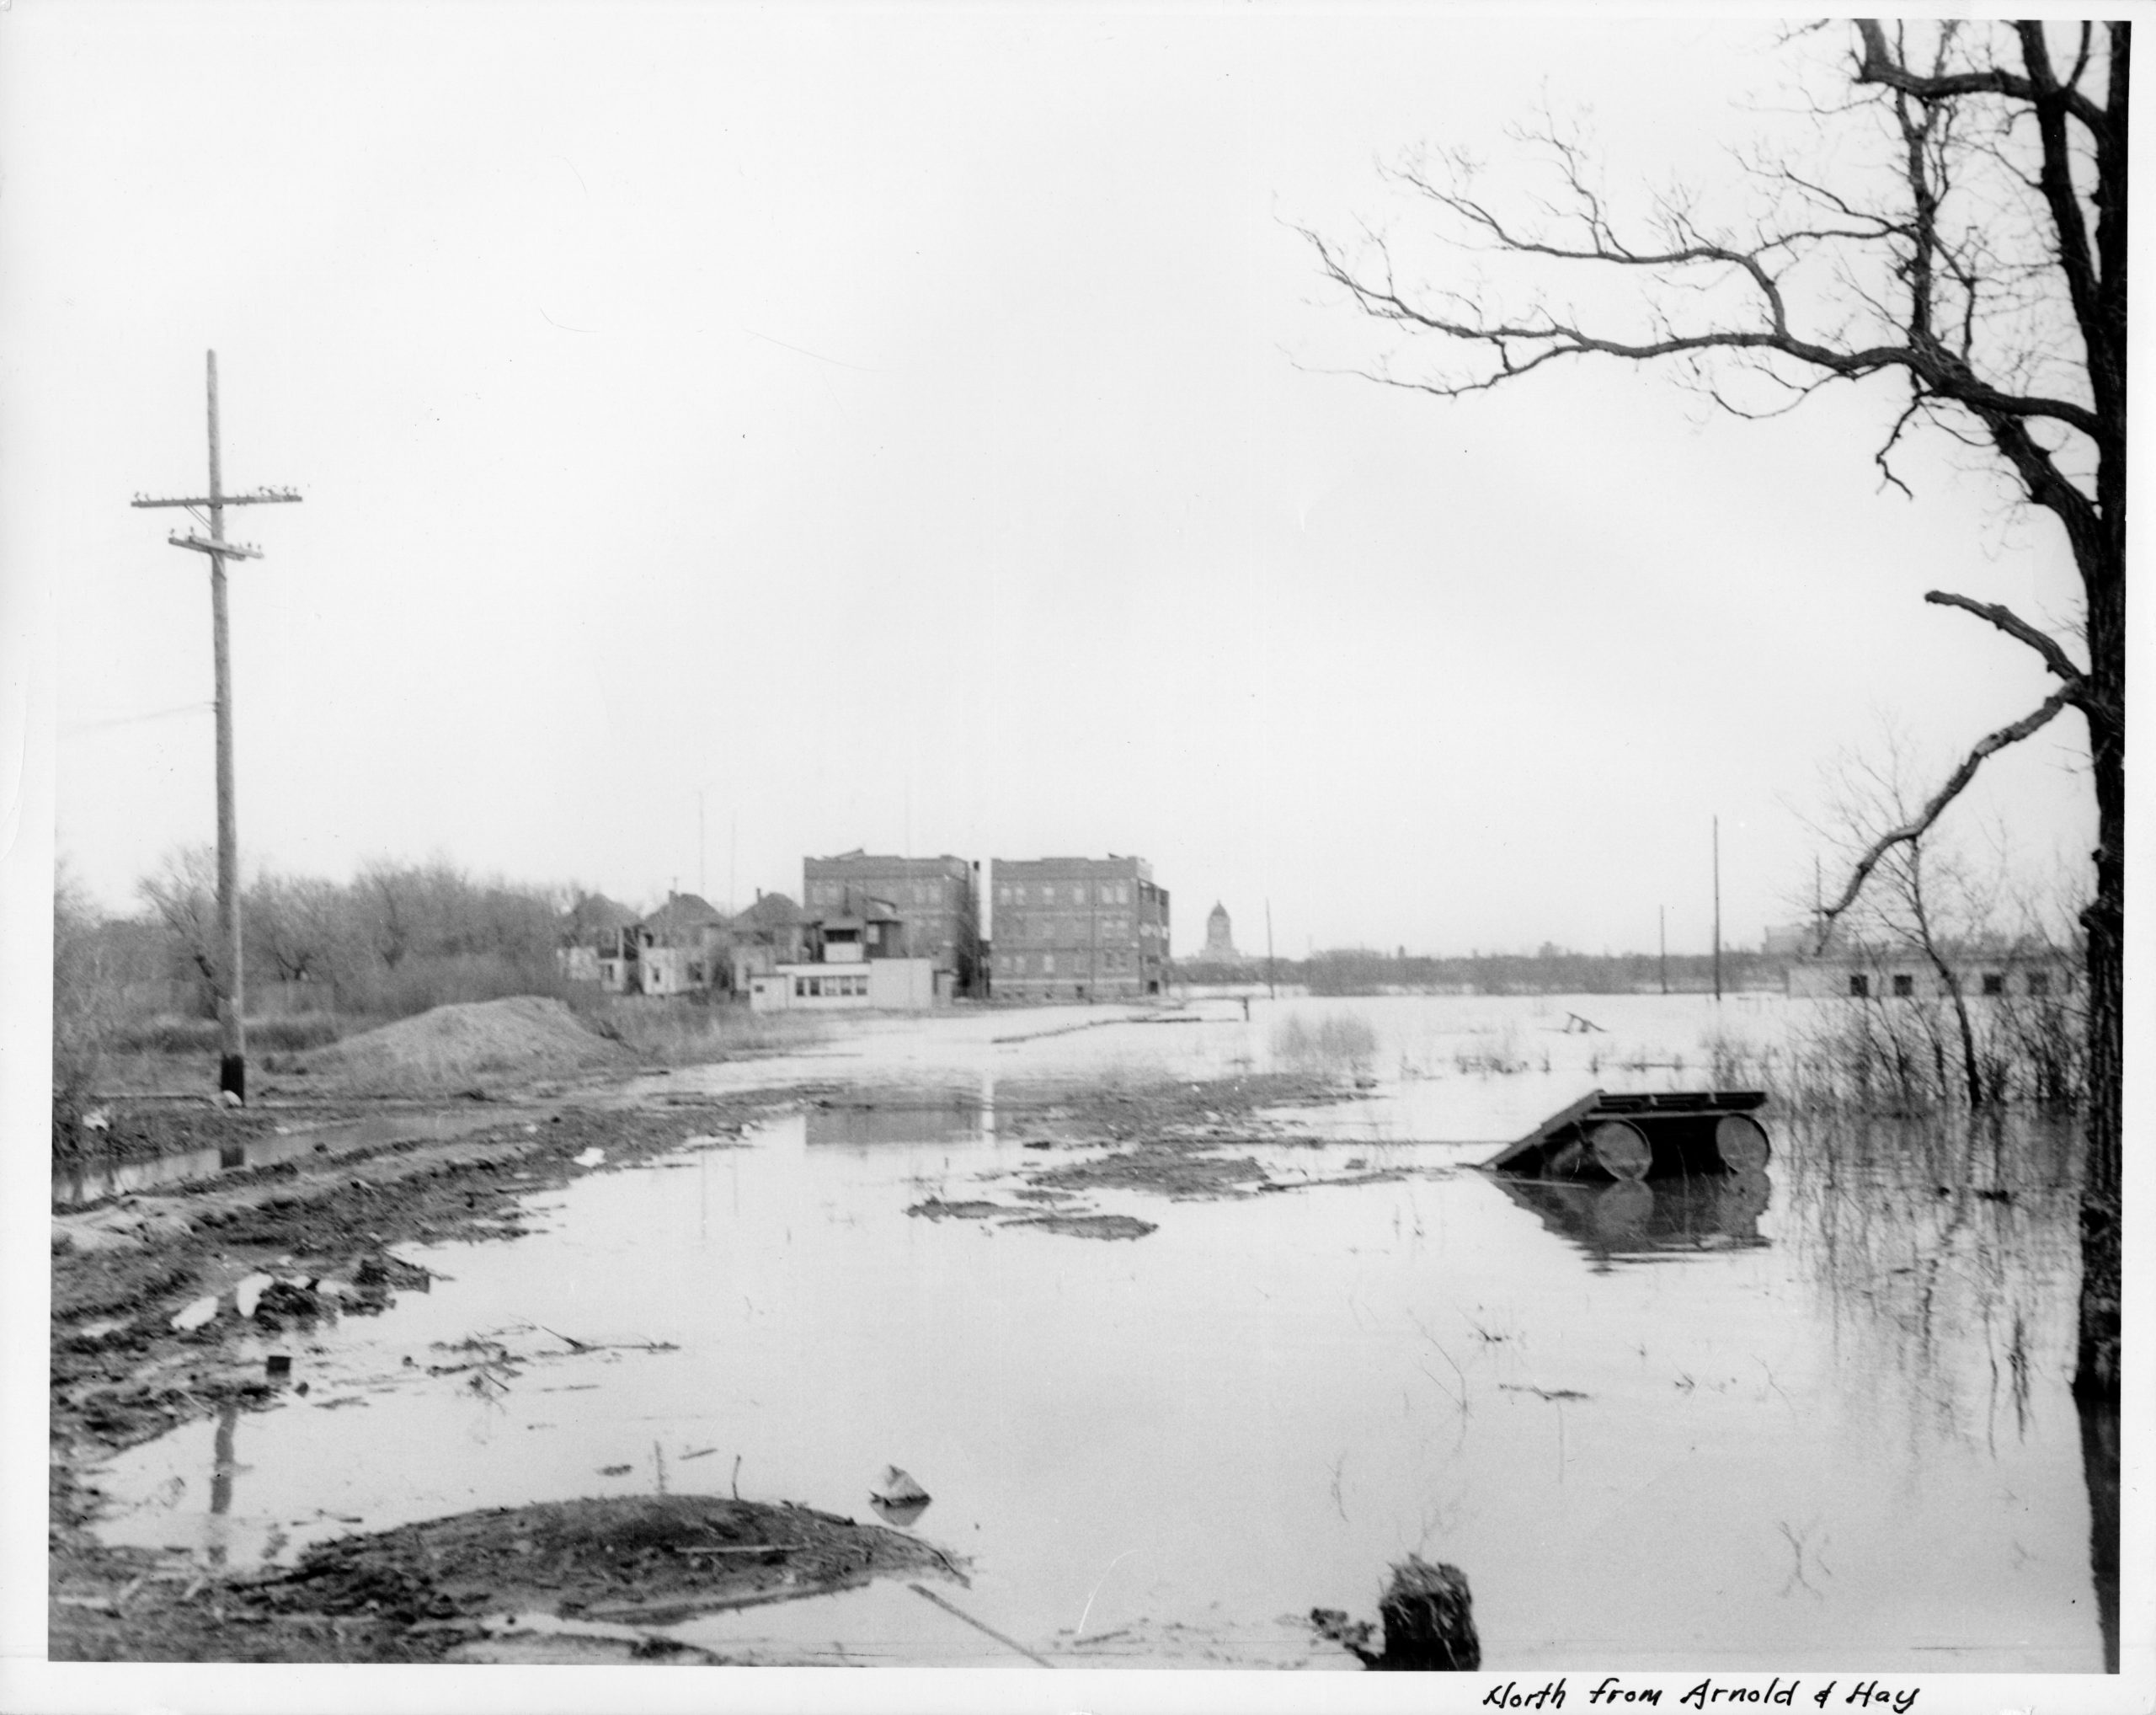 North from Arnold and Hay 1950s flood